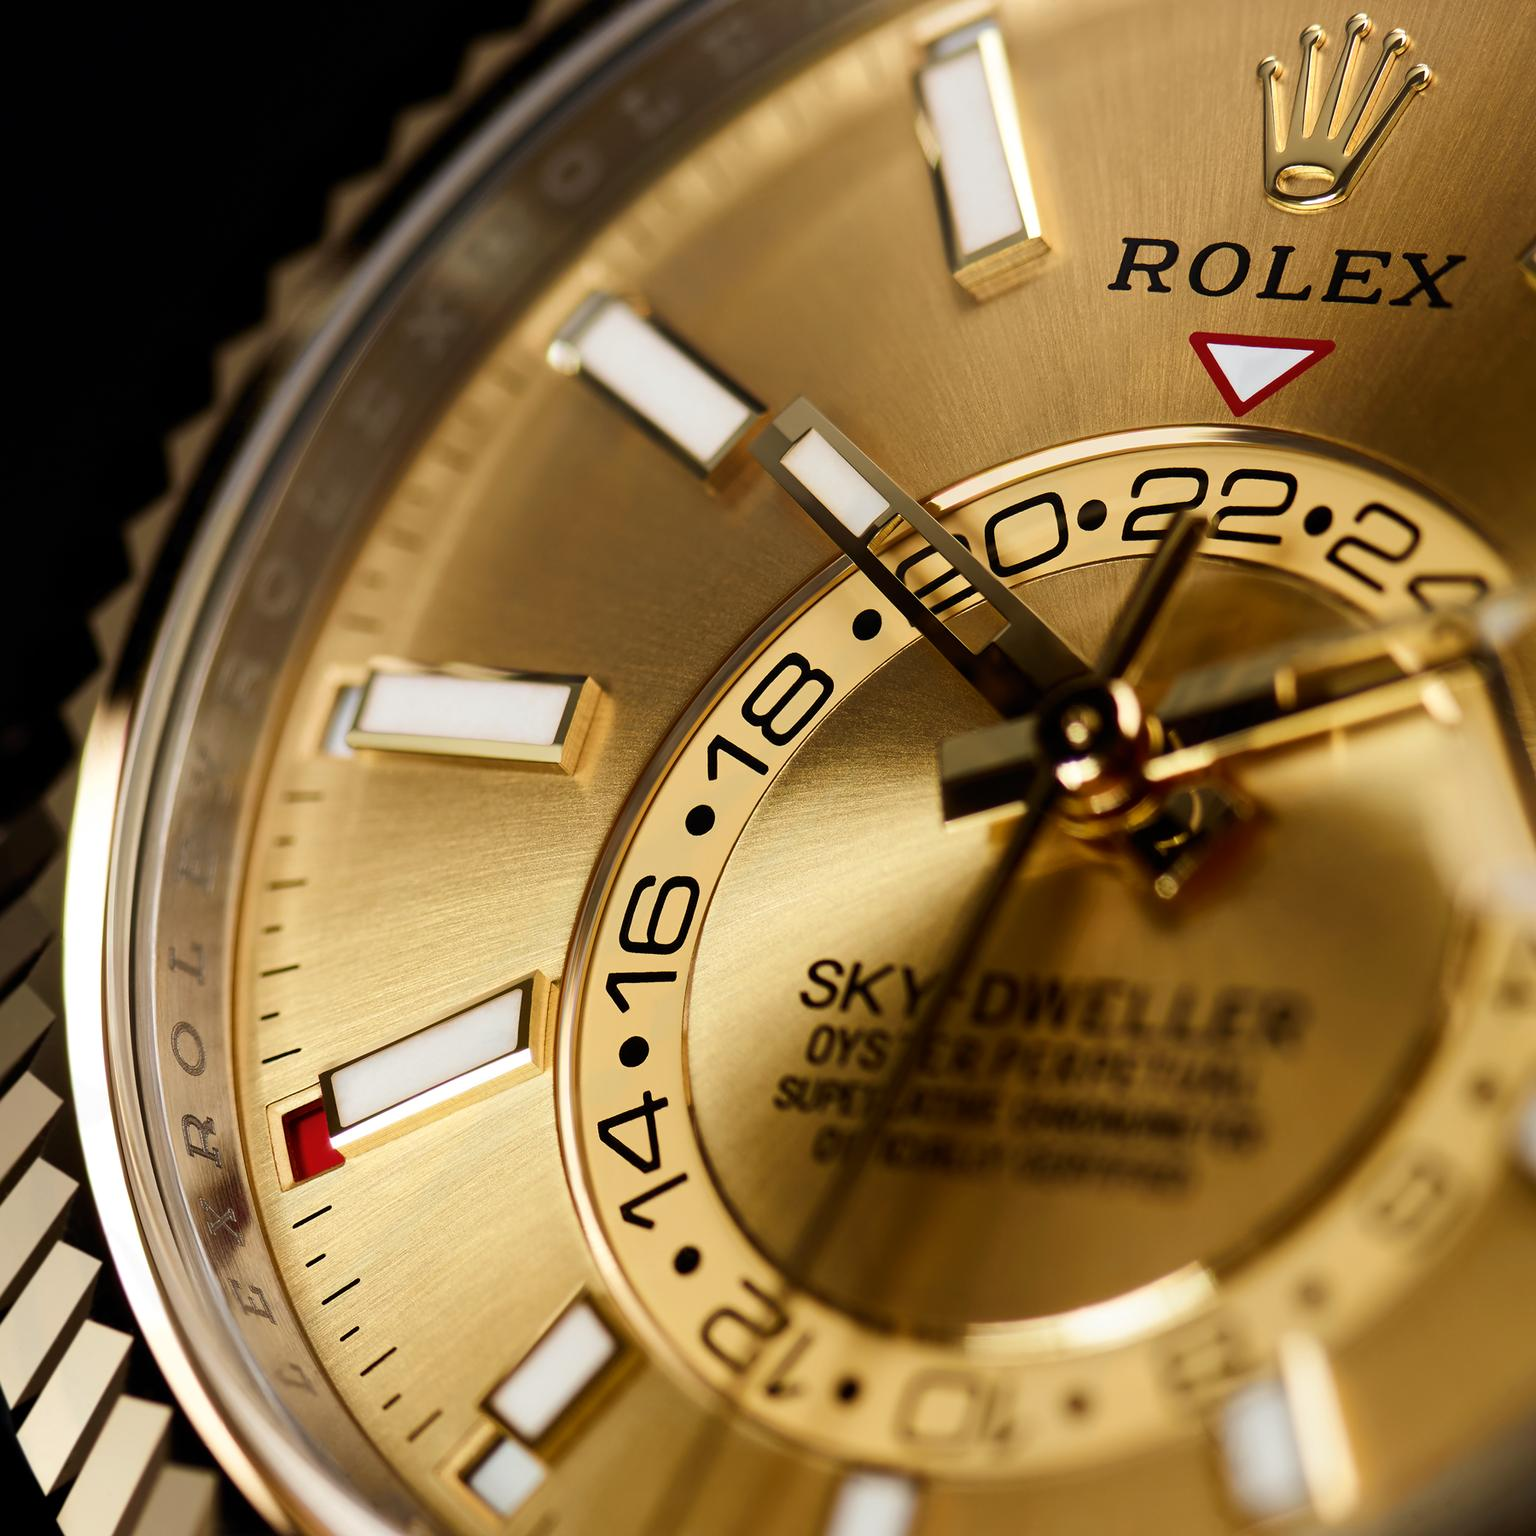 Rolexs Watches Seven Pillars Of Wisdom The New Rolex Watches For 2017 The